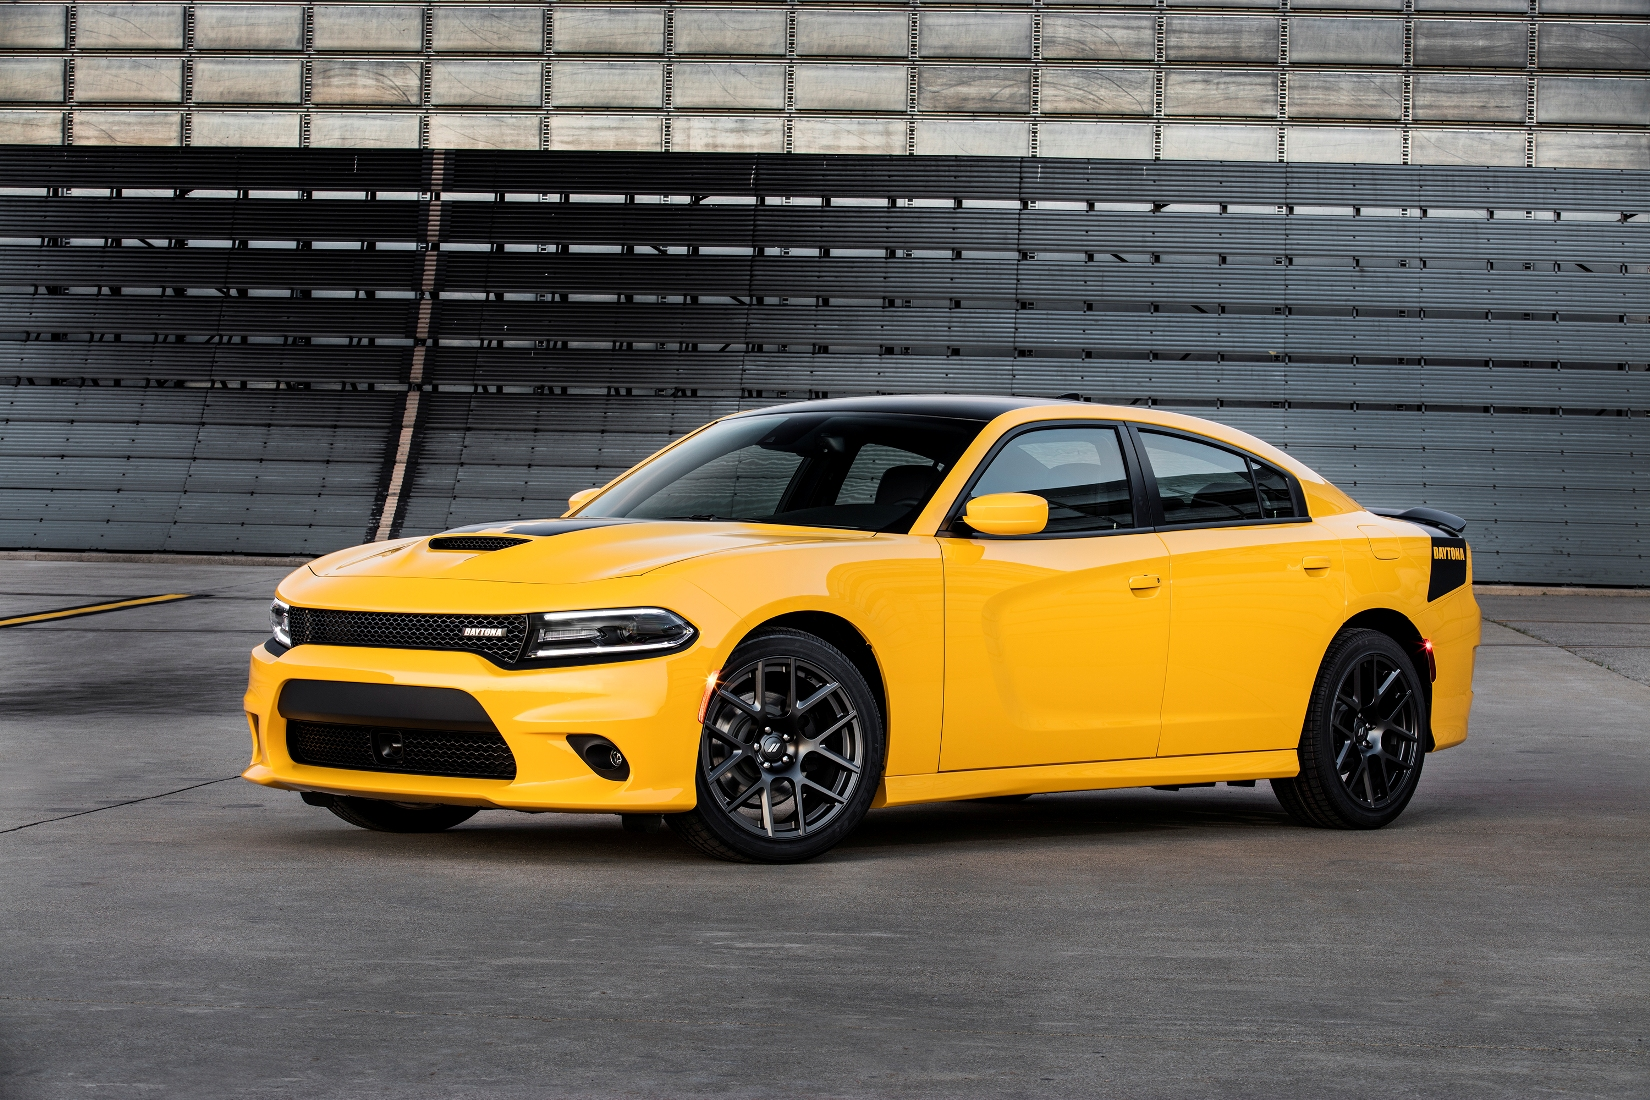 Dodge dodge charger with wing : Driving a 2017 Dodge Charger Daytona to Daytona? Surprising. Not ...